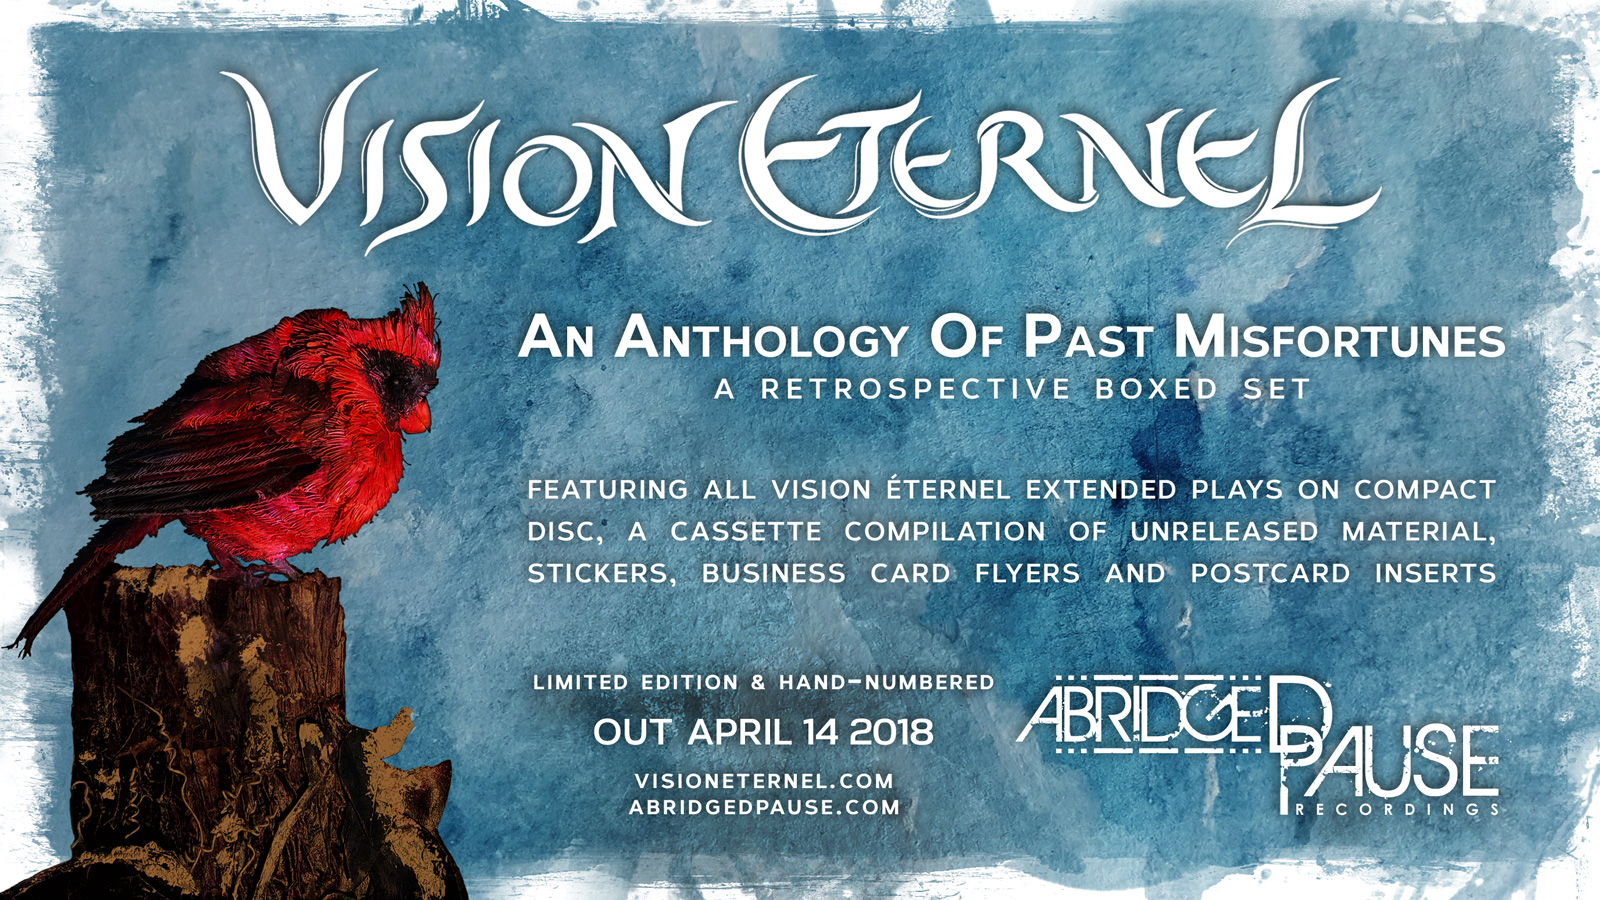 An Anthology Of Past Misfortunes Boxed Set Is Released